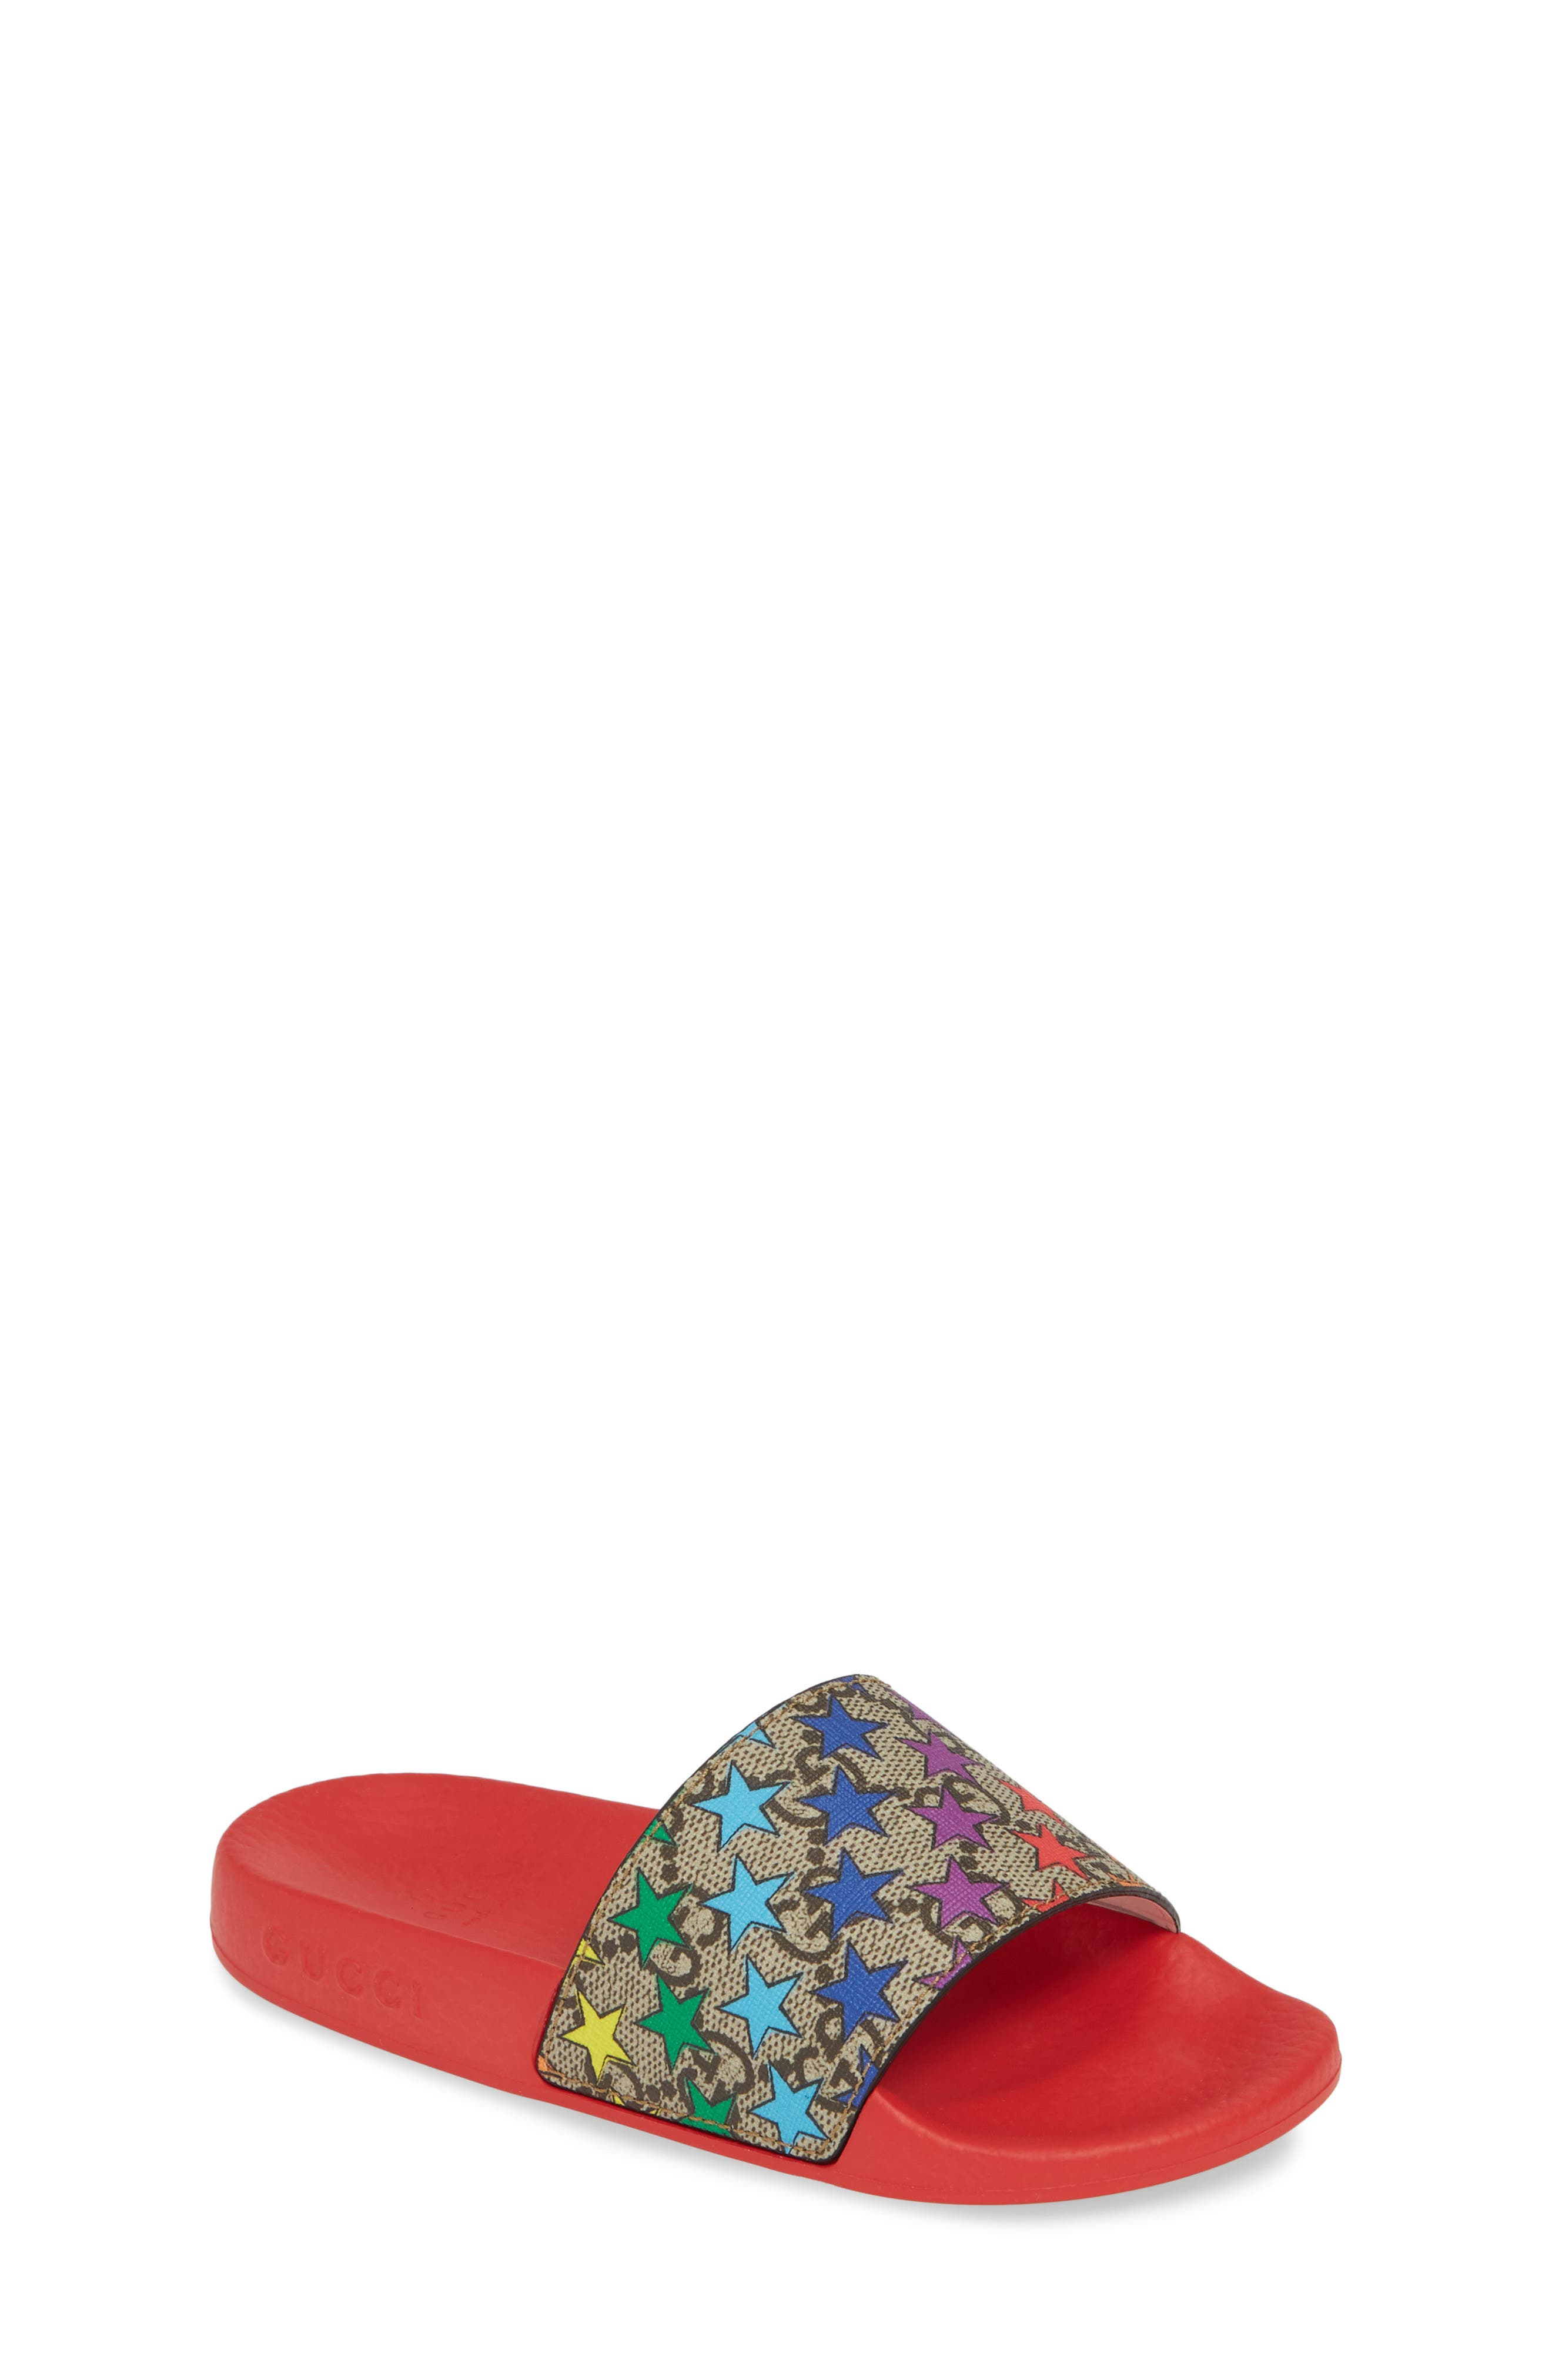 Pursuit Slide Sandal, Main, color, 624